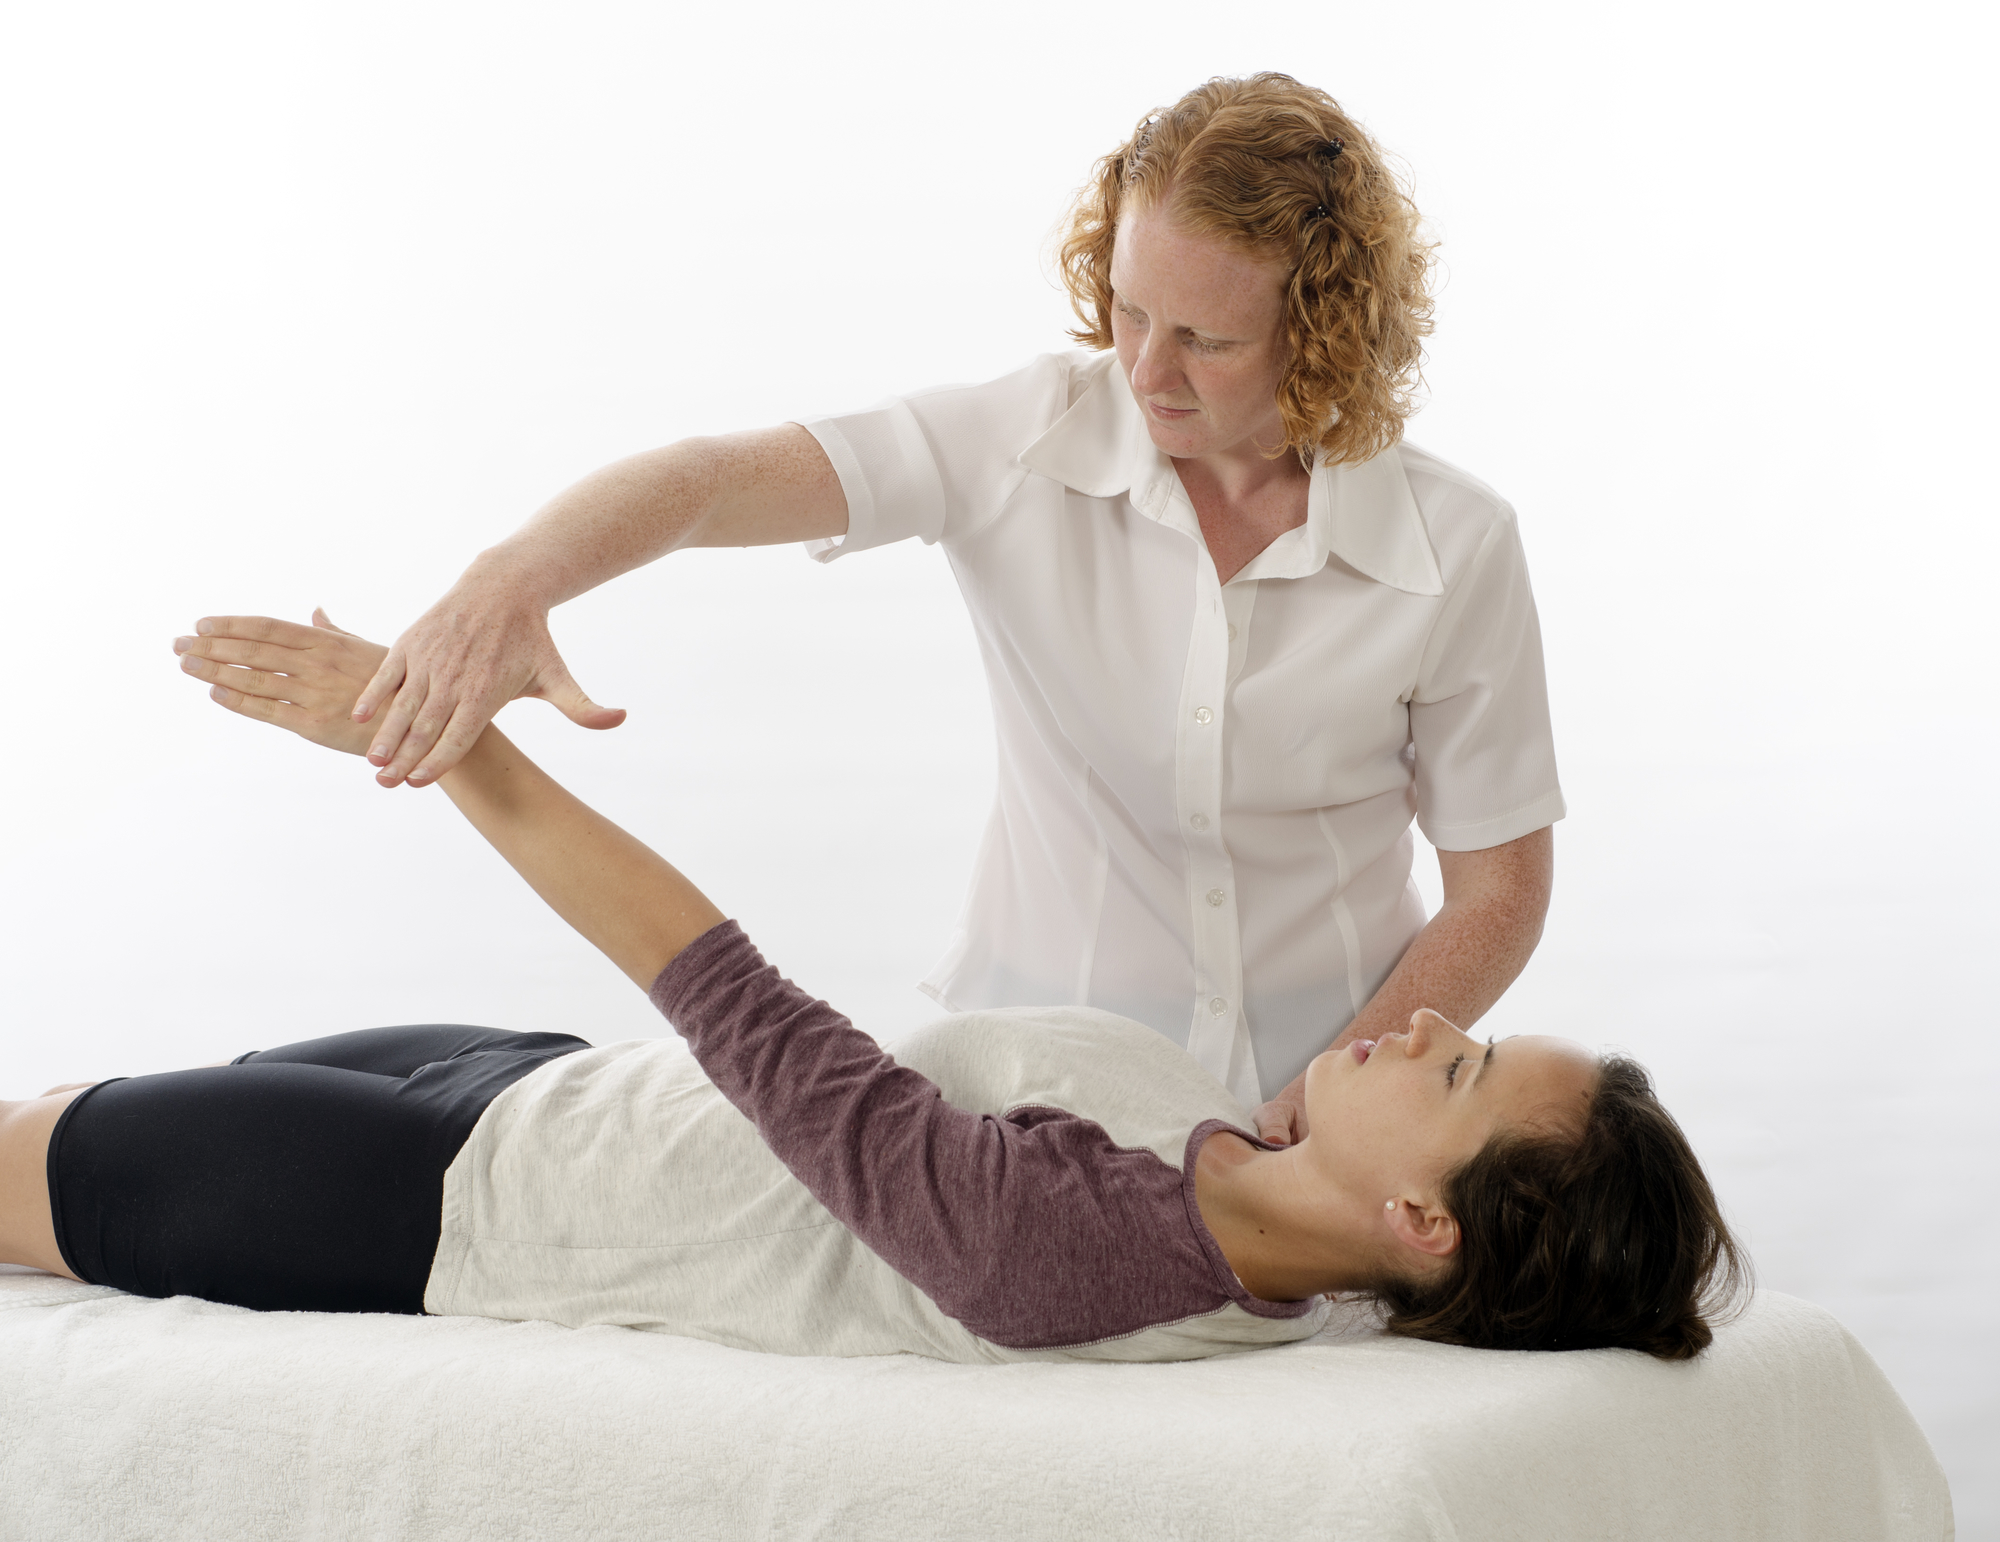 Kinesiologist or physiotherapist treating Supraspinatus